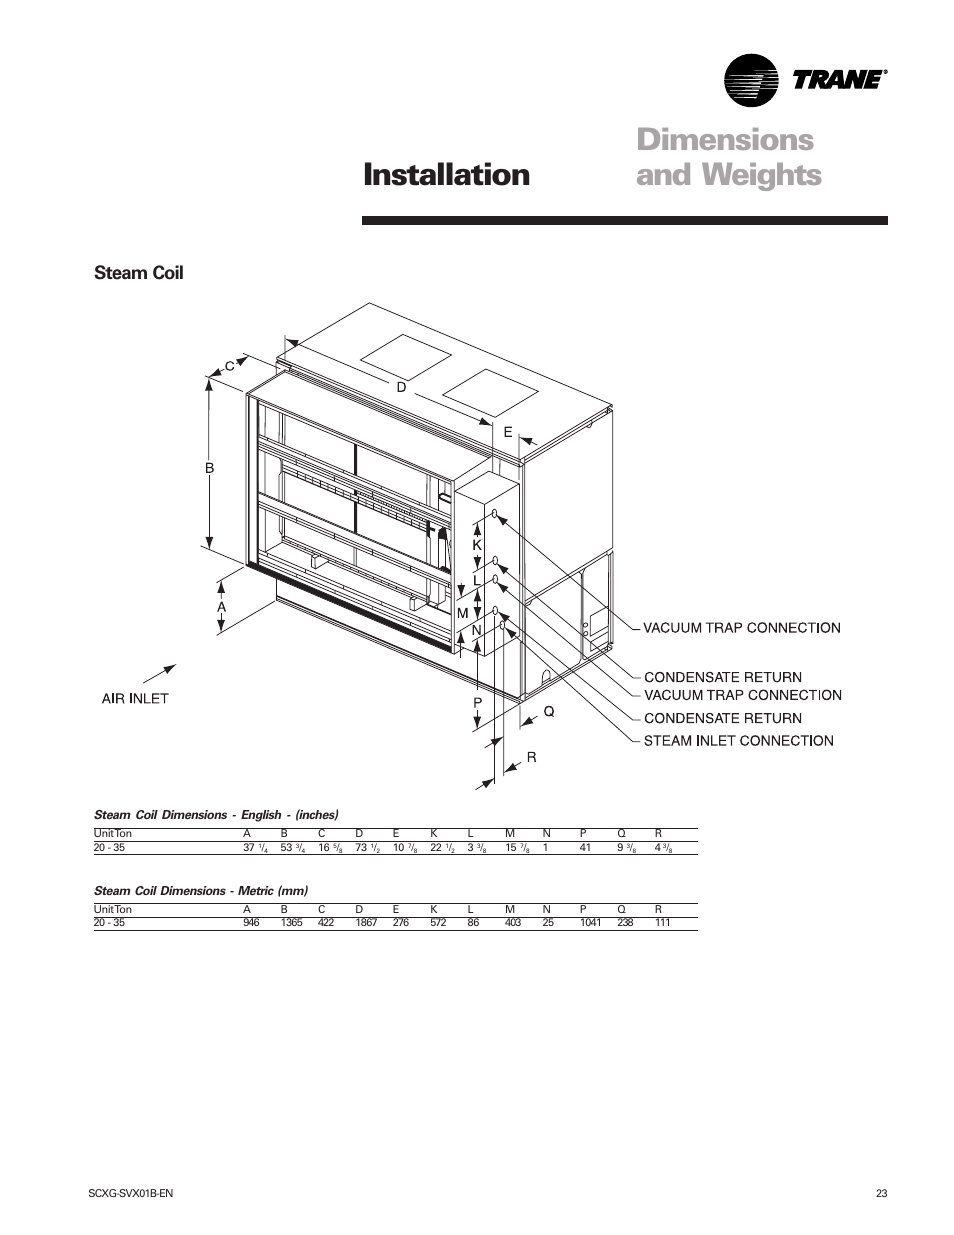 Trane Steam Coil New Photos Rauc Wiring Diagram Dimensions And Weights Installation Intellipak